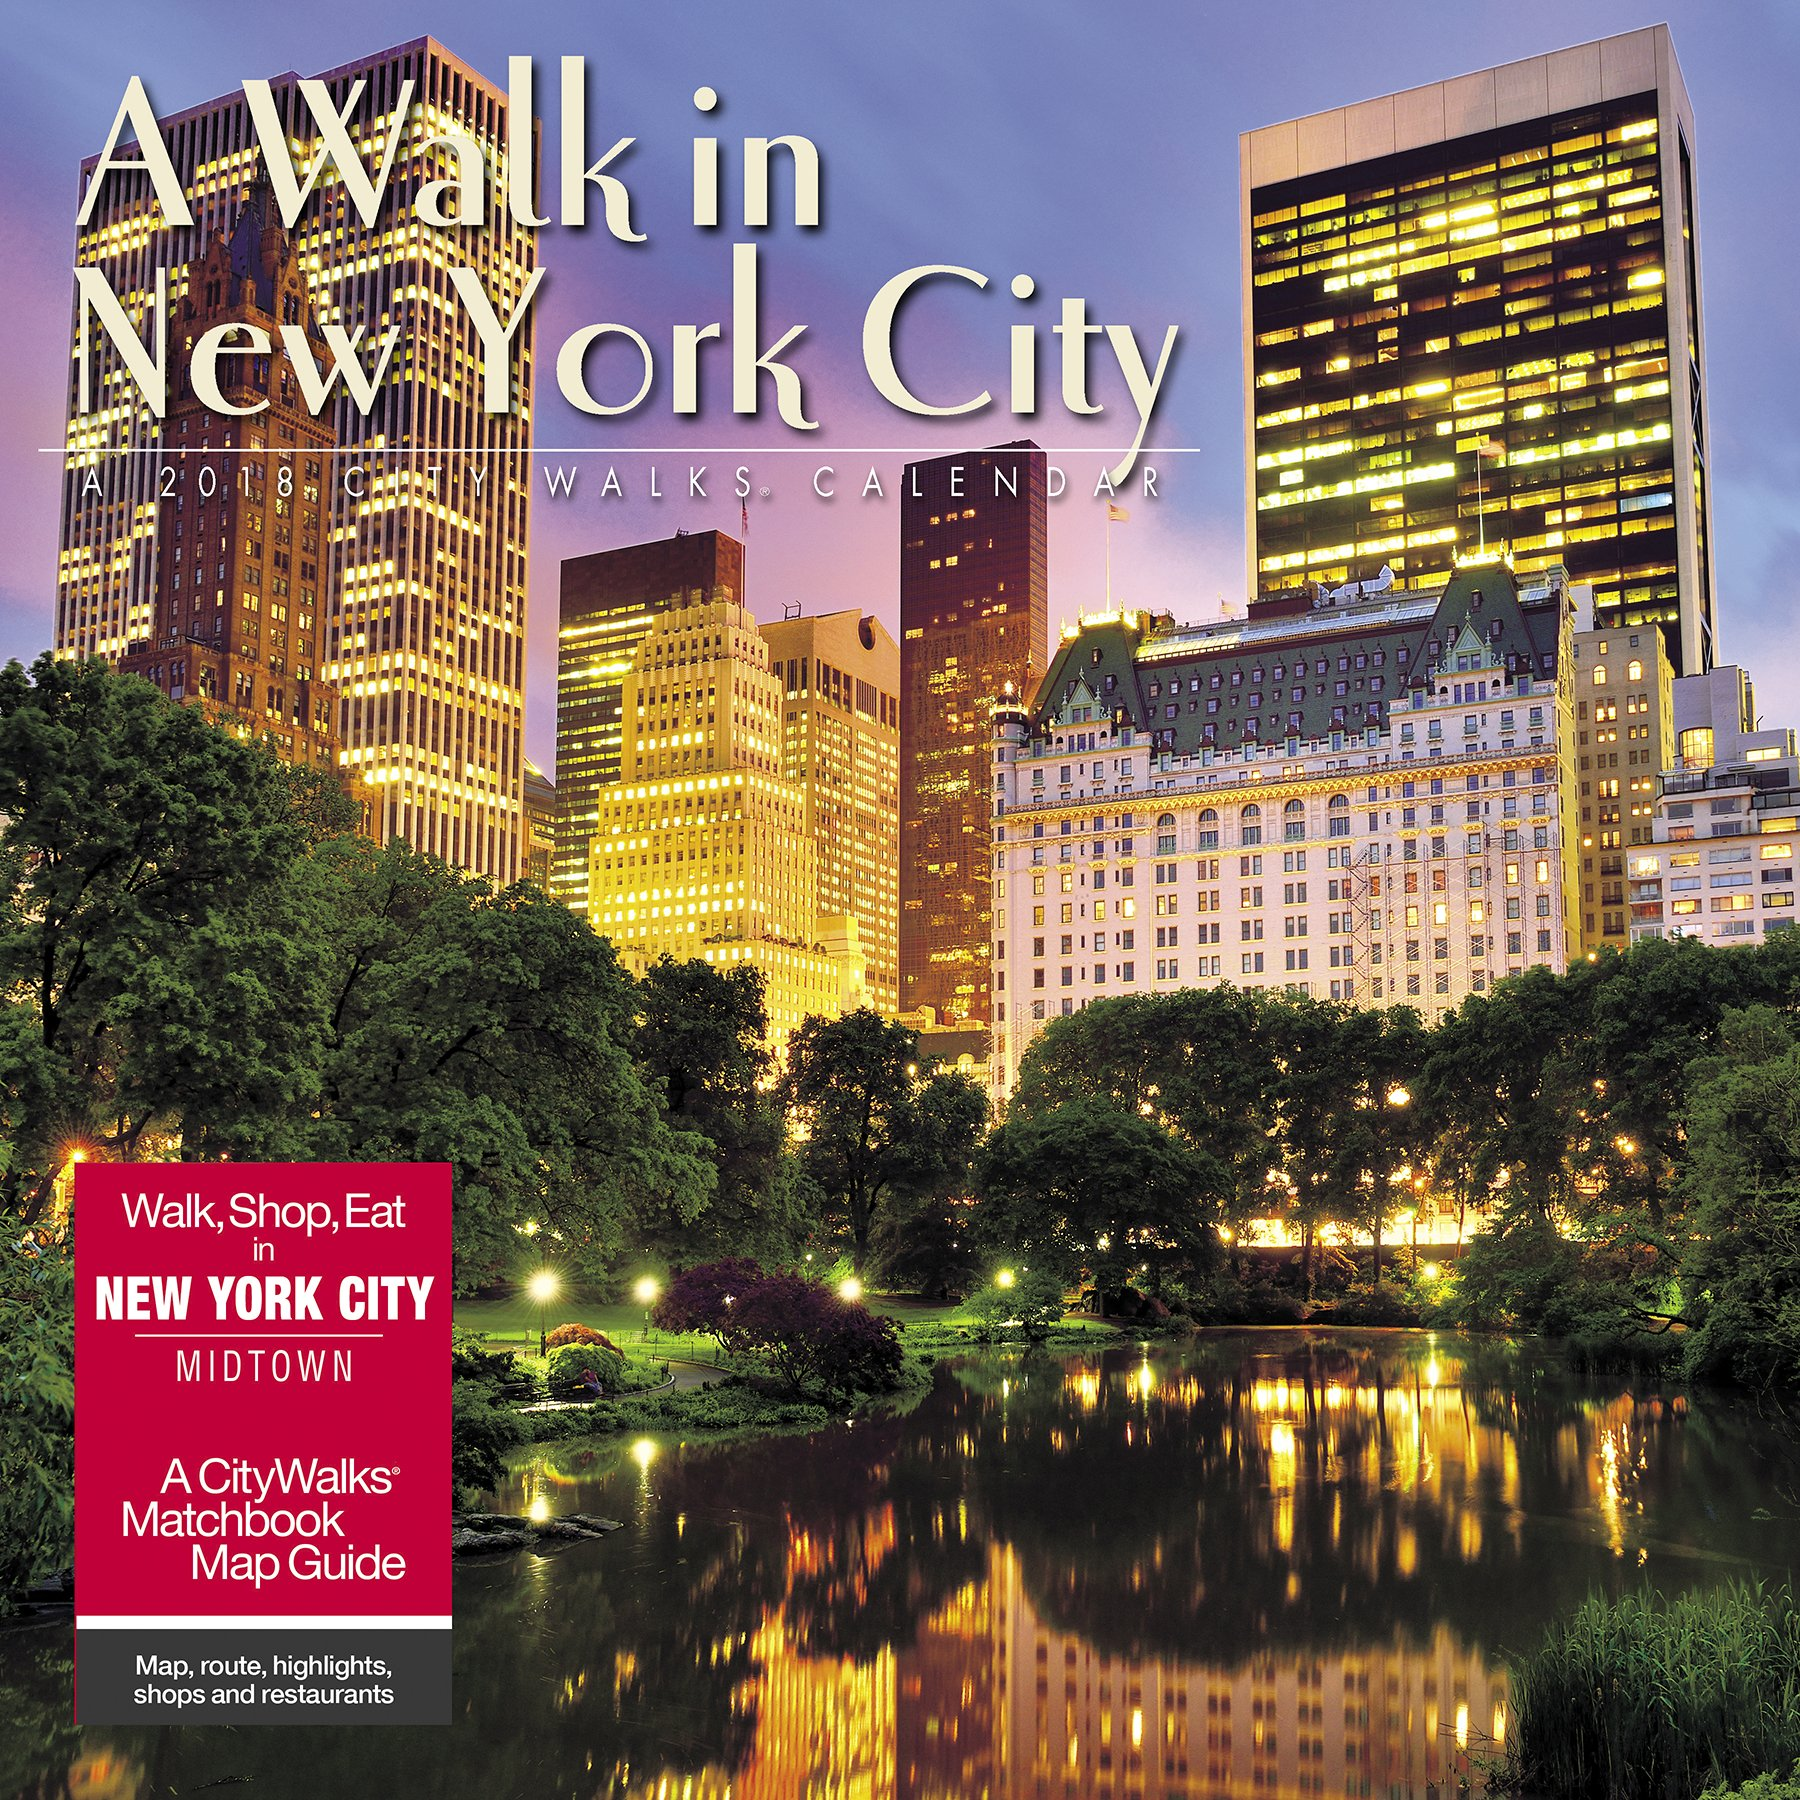 A Walk in New York City 2018 Calendar: Includes CityWalks Matchbook ...